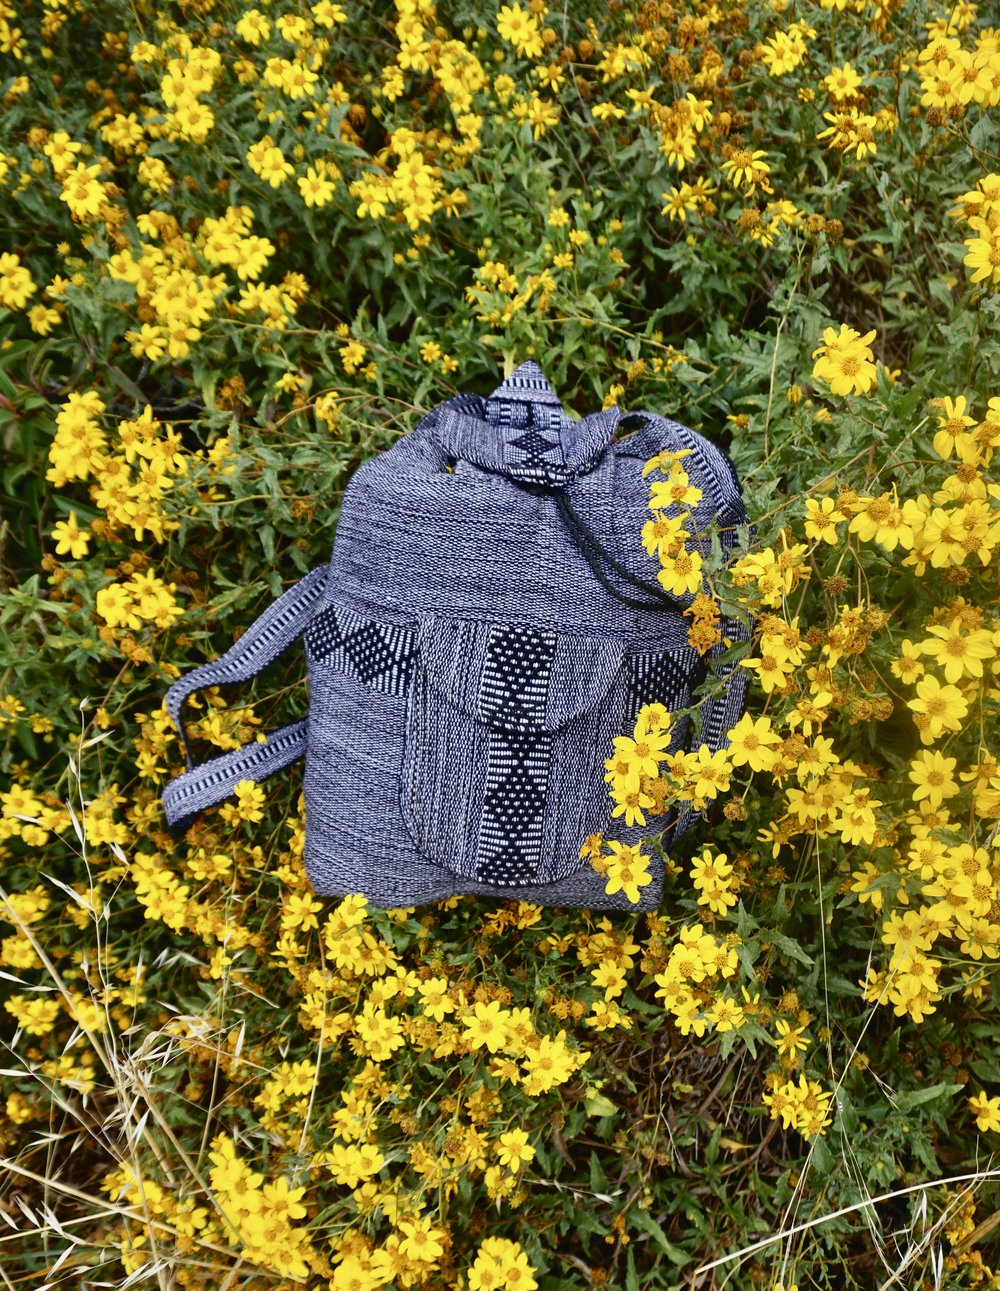 Baja Roots backpacks have a front zipper pocket,a chord on the top and pin to close the bag and keep it closed. They are coming out with a new prototype that will be for water sports and for hiking, I'll keep you informed.